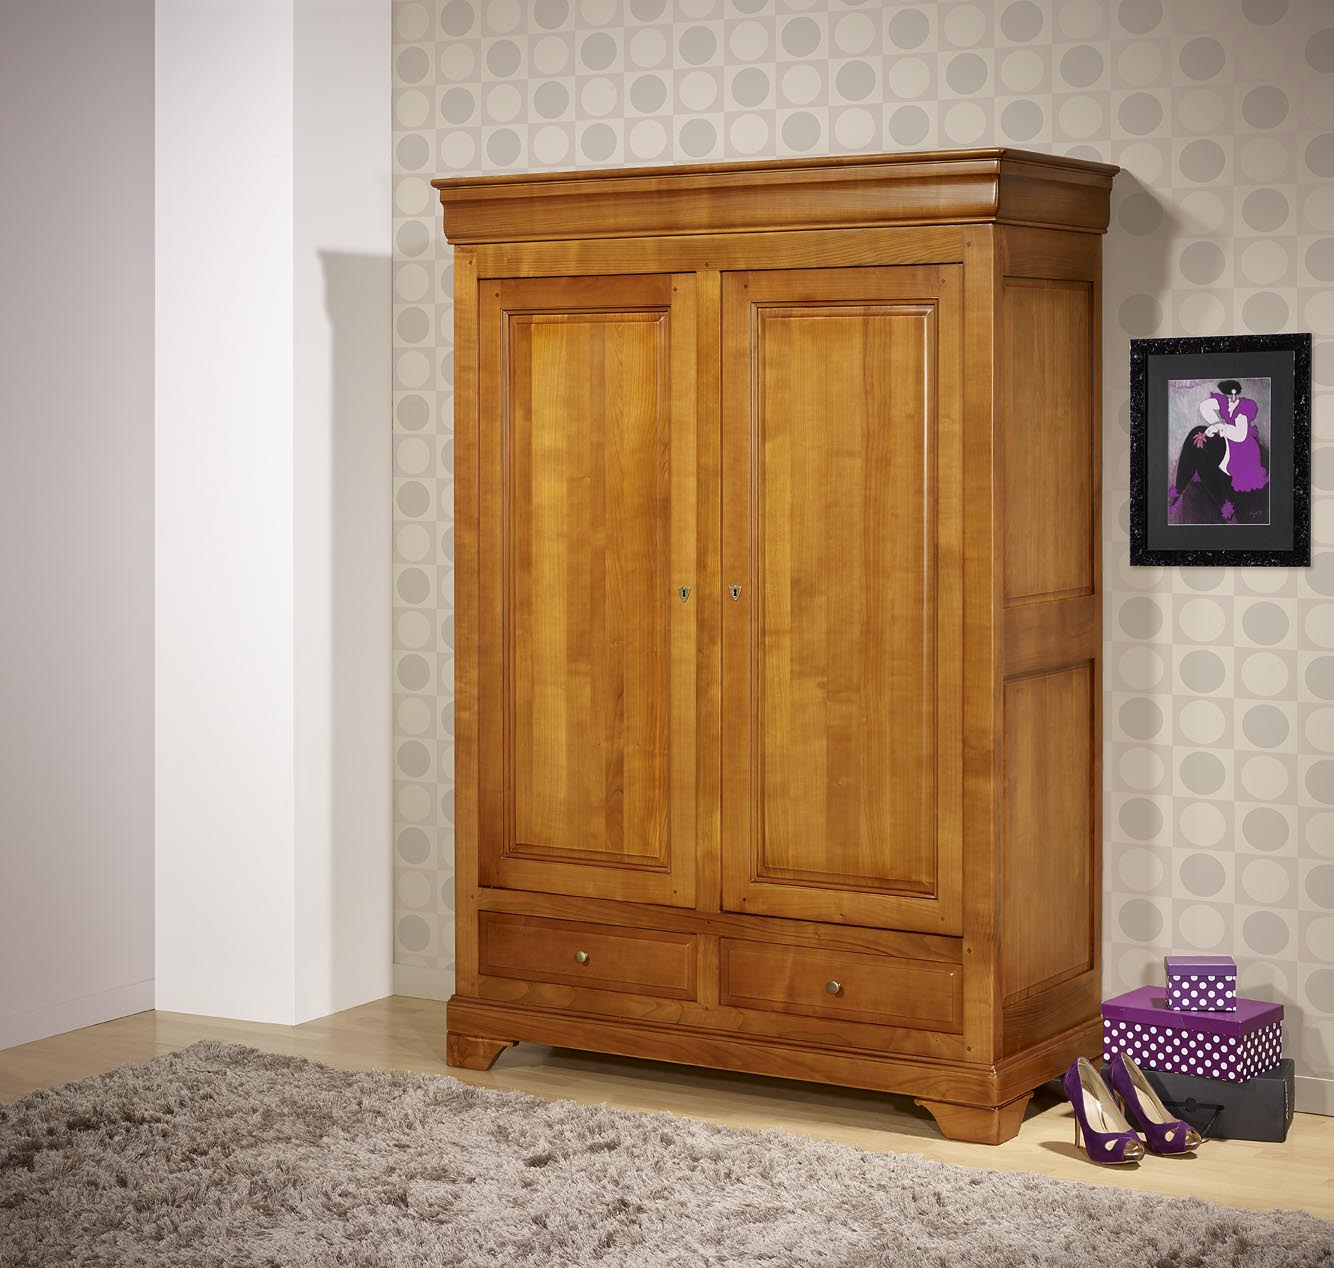 petite armoire 2 portes 2 tiroirs in s en merisier massif de style louis philippe meuble en. Black Bedroom Furniture Sets. Home Design Ideas